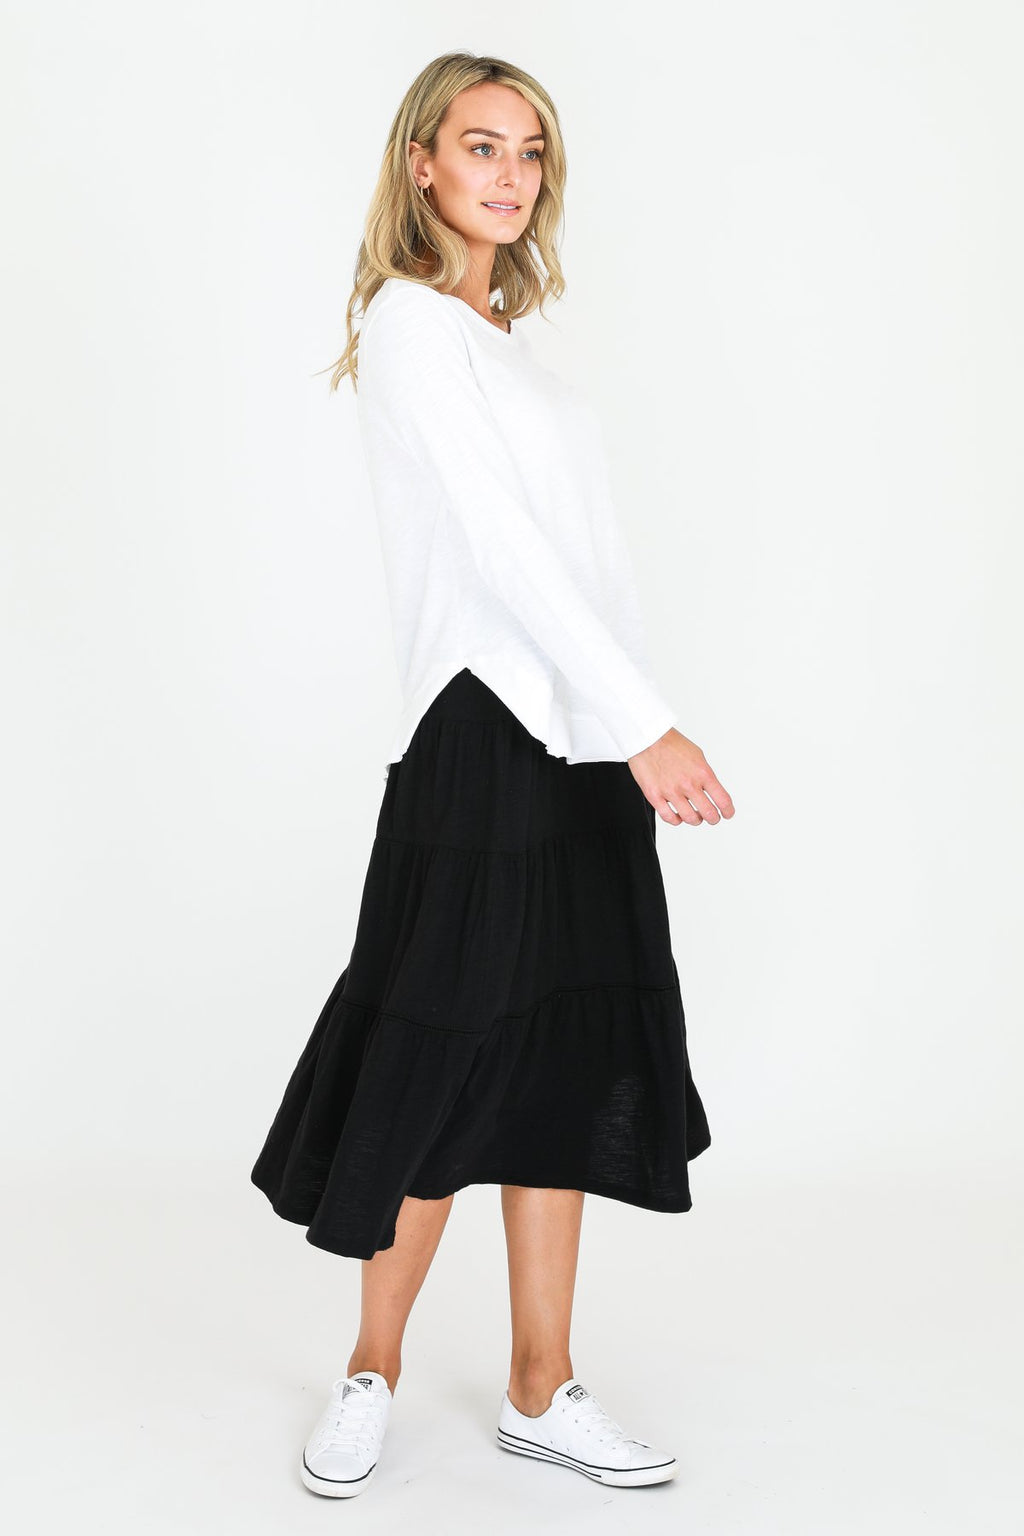 Piper Skirt- Black